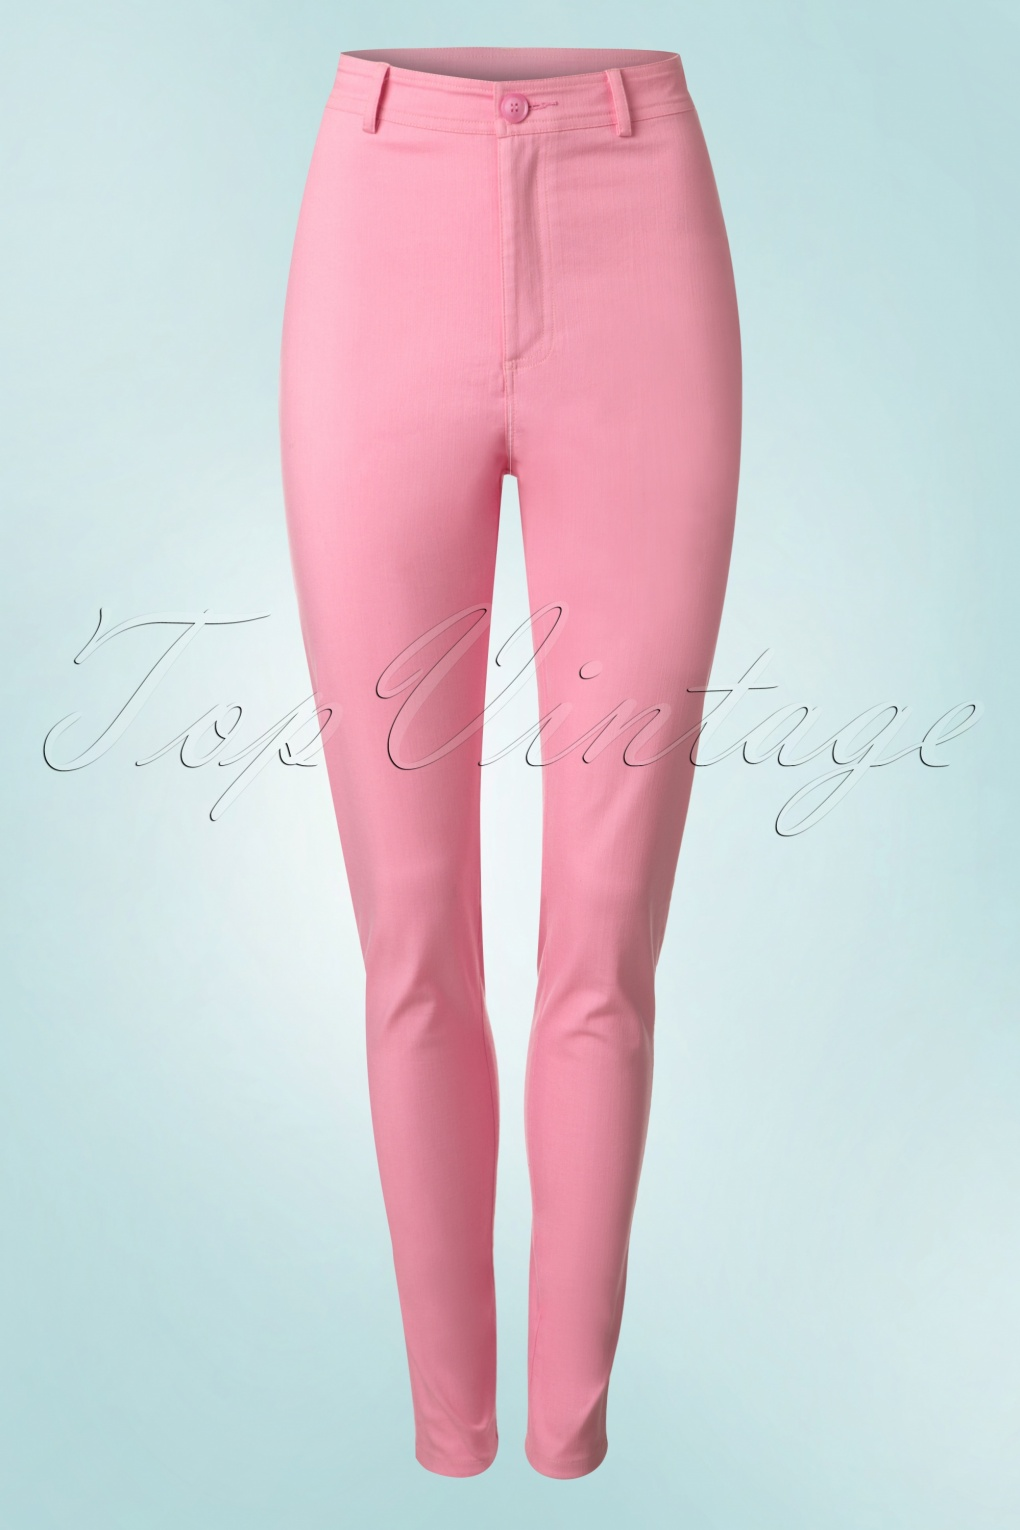 1950s Style Pants | Pinup Capri | High Waist Jeans 50s Maddie Trousers in Bubblegum Pink £39.47 AT vintagedancer.com